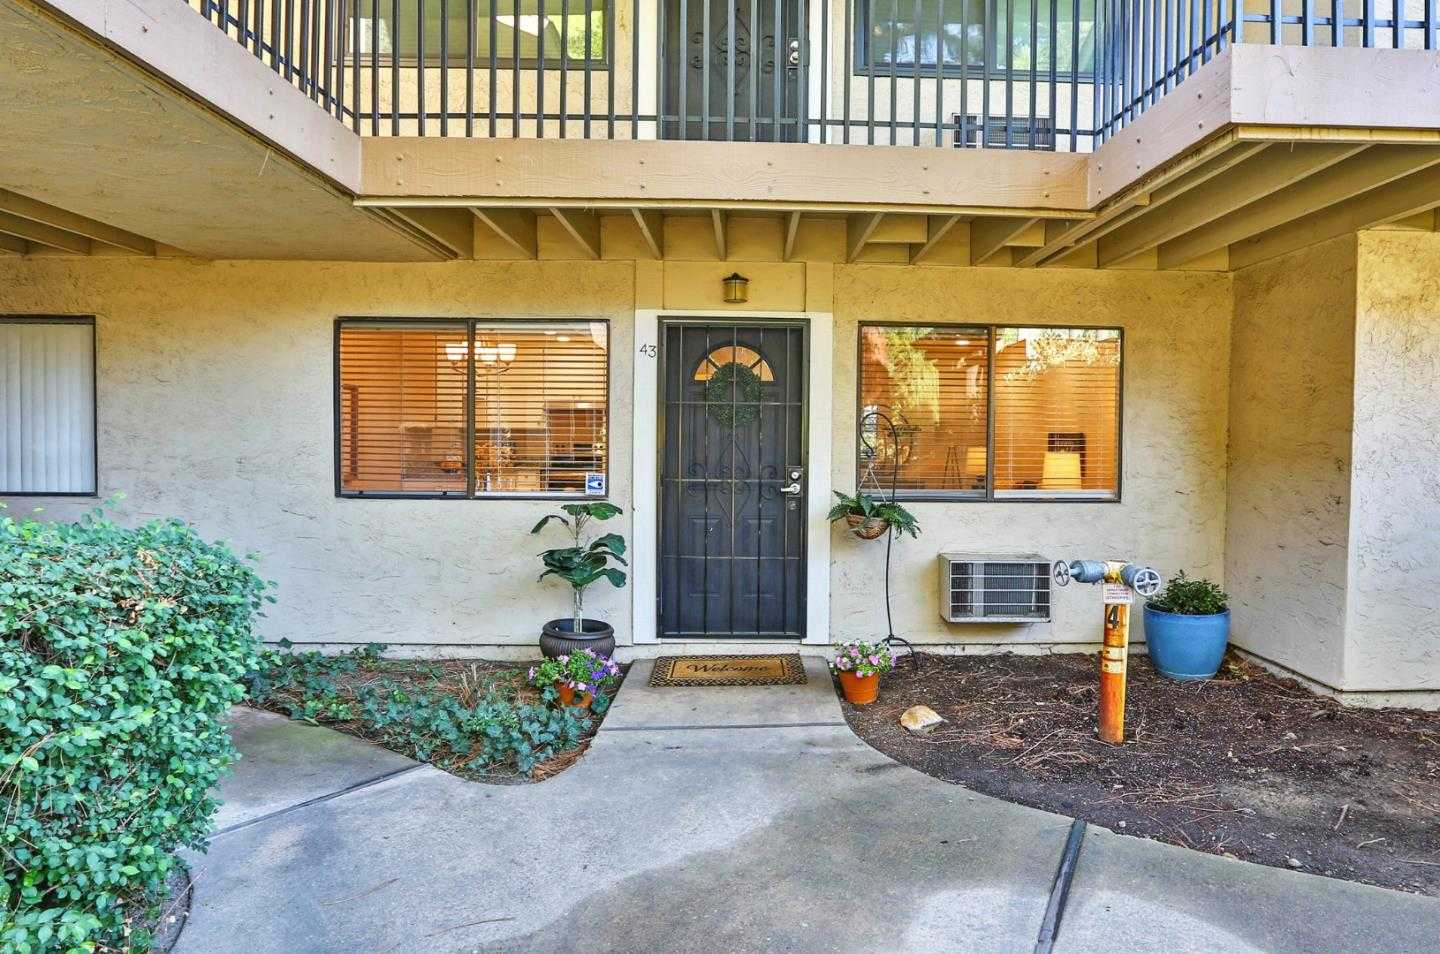 185 Union AVE 43 CAMPBELL, CA 95008